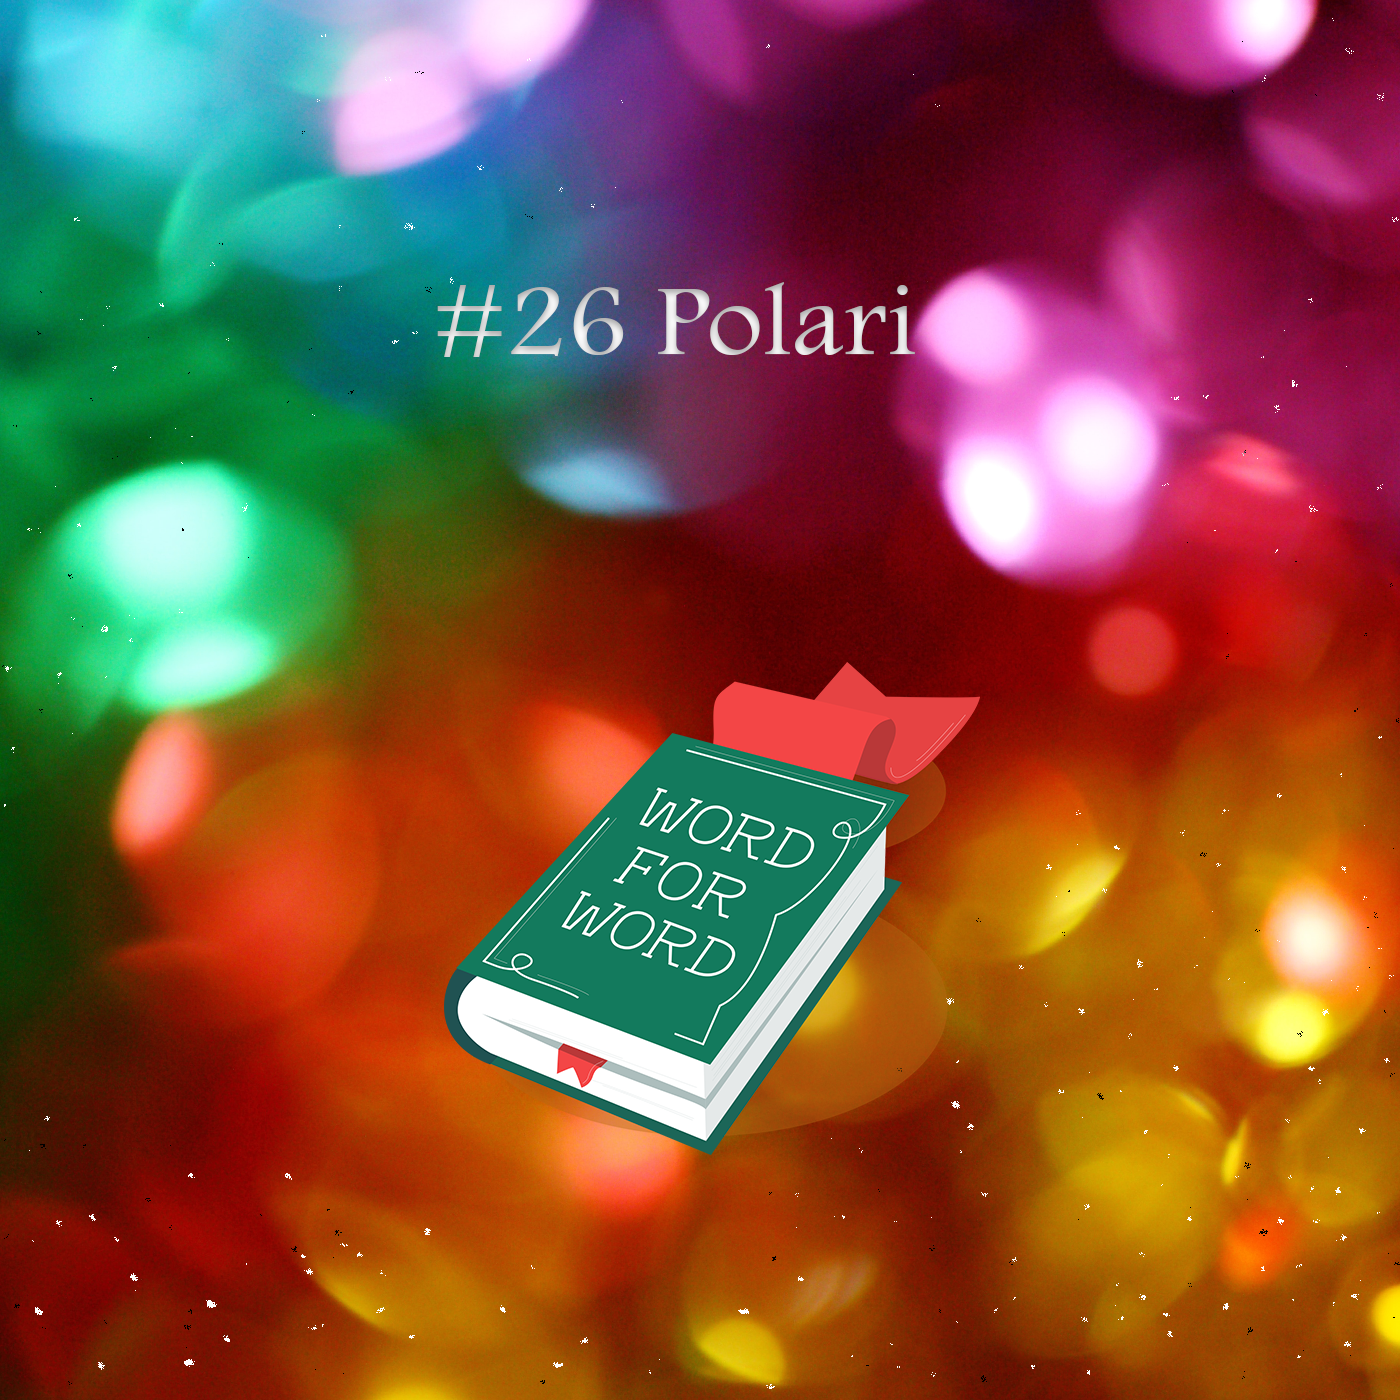 Image of unfocused rainbow lights and text: #26 Polari